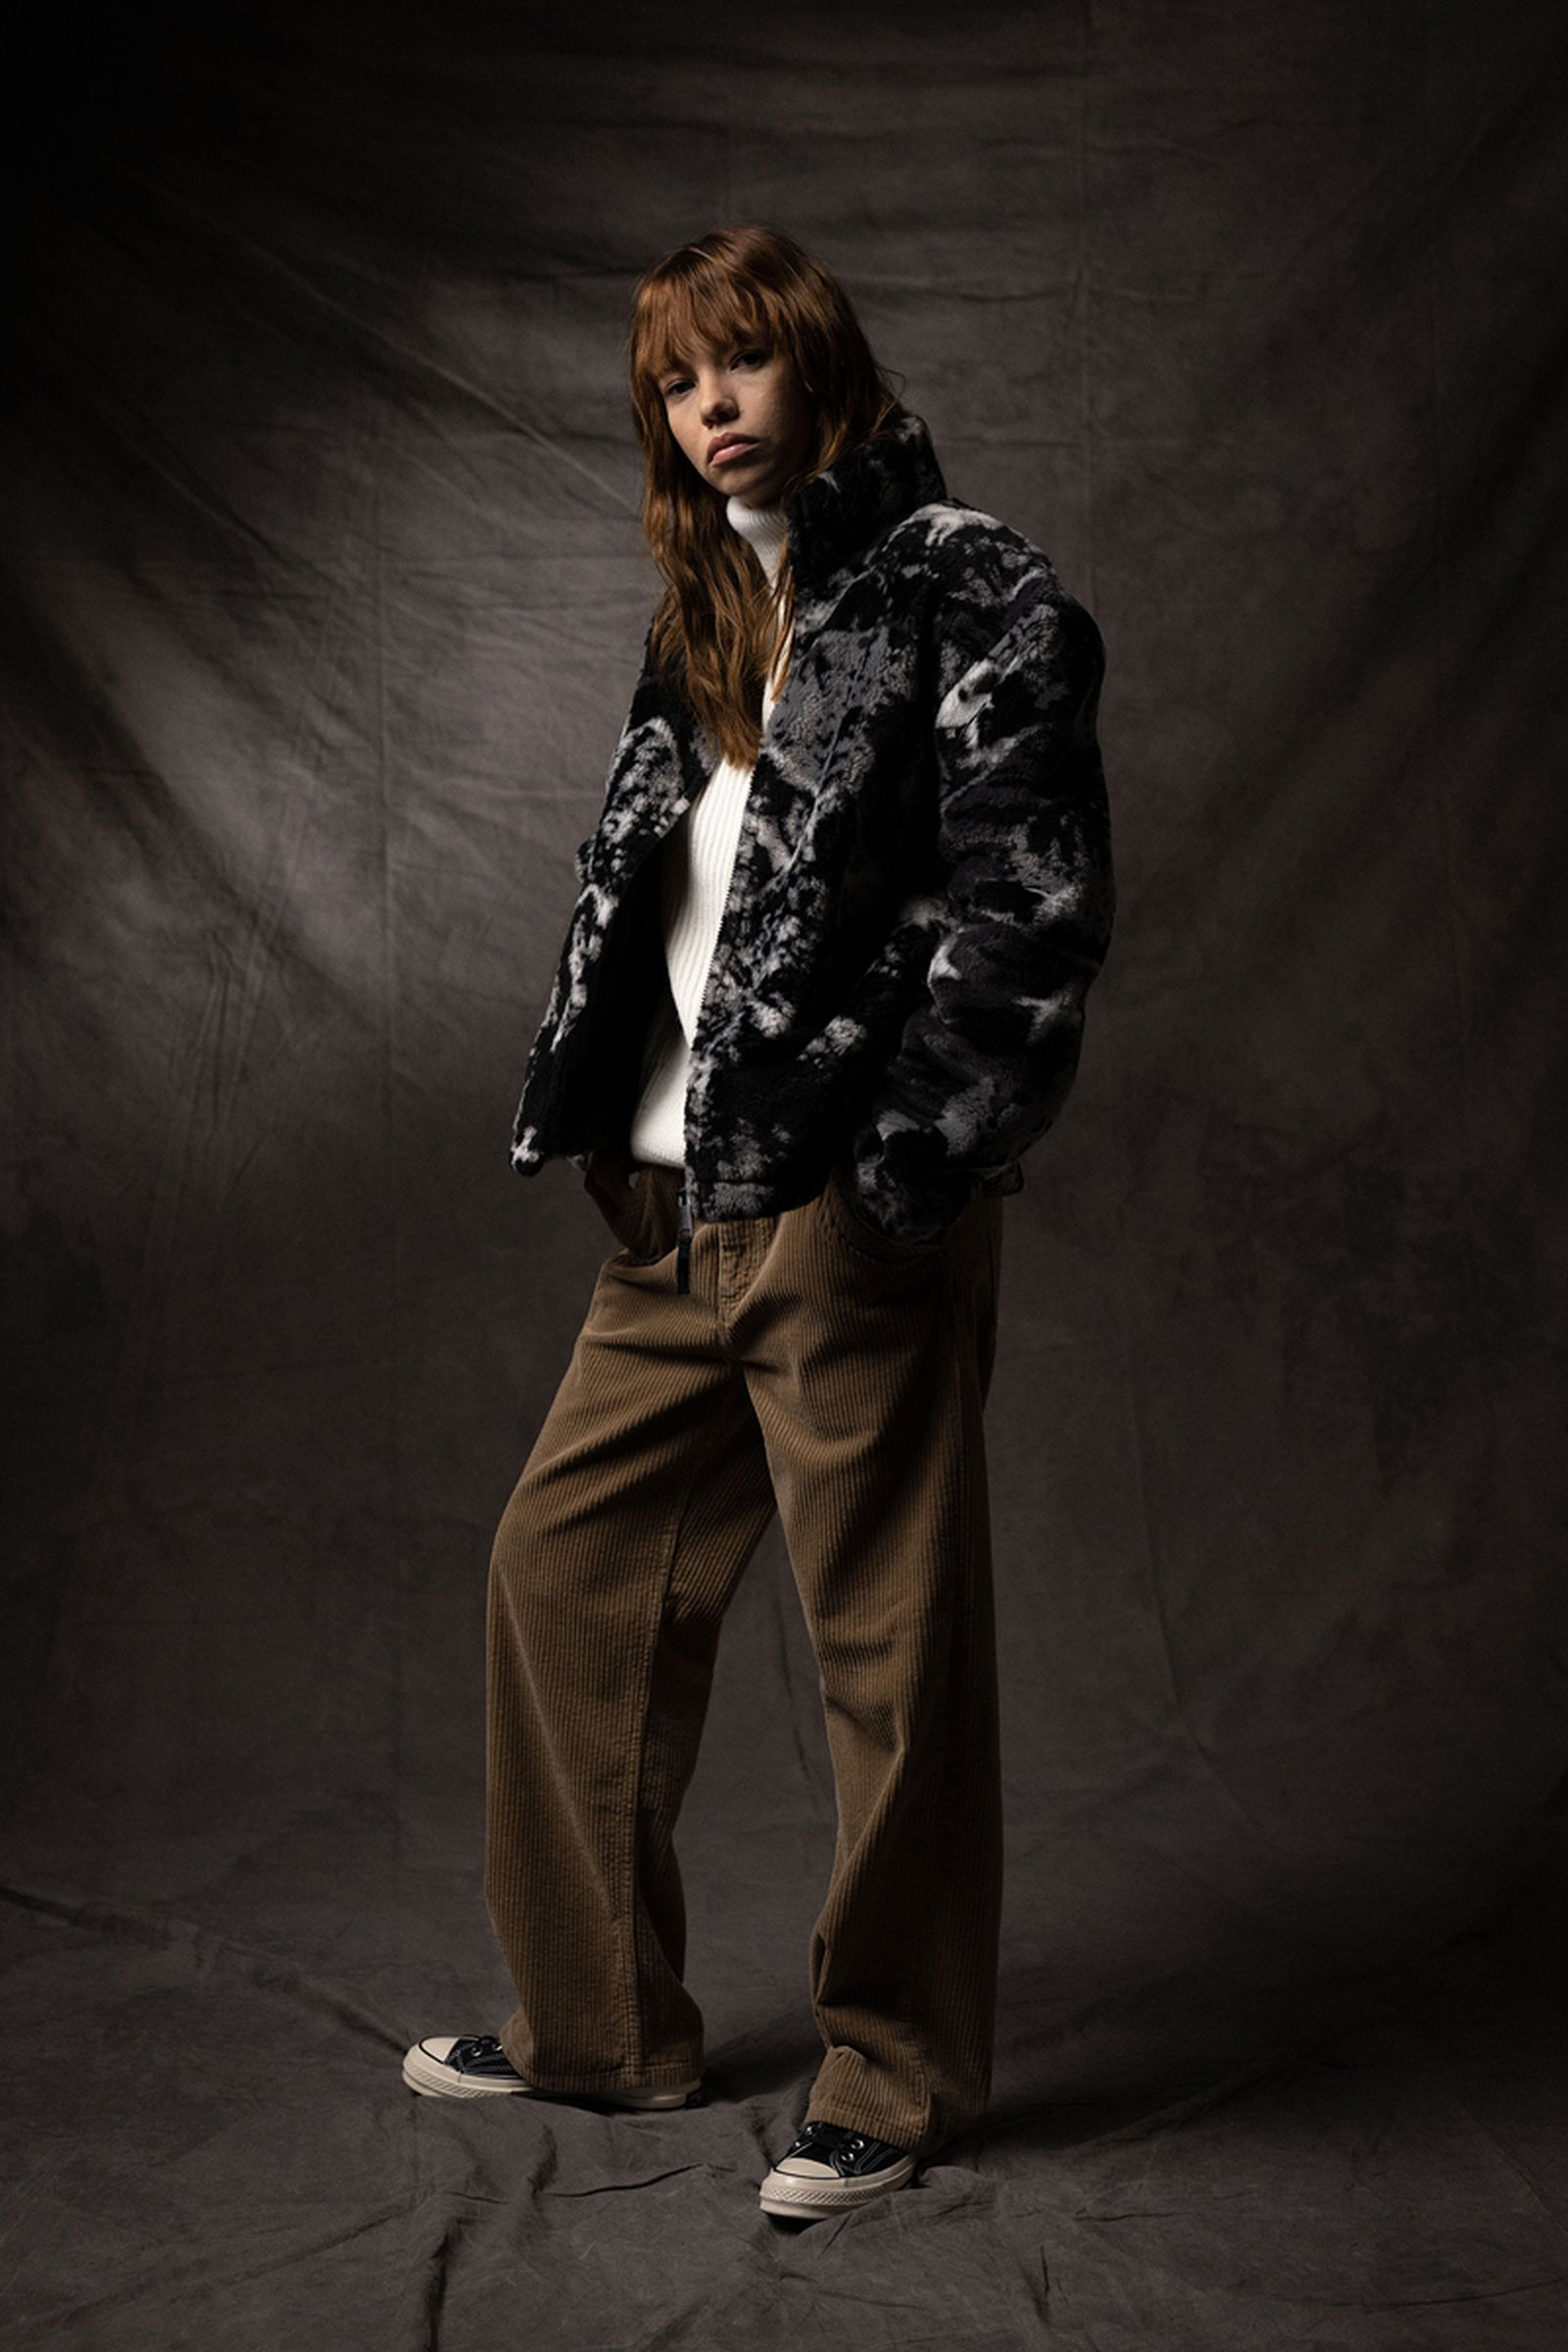 carhartt-wip-fall-winter-2021-collection- (29)